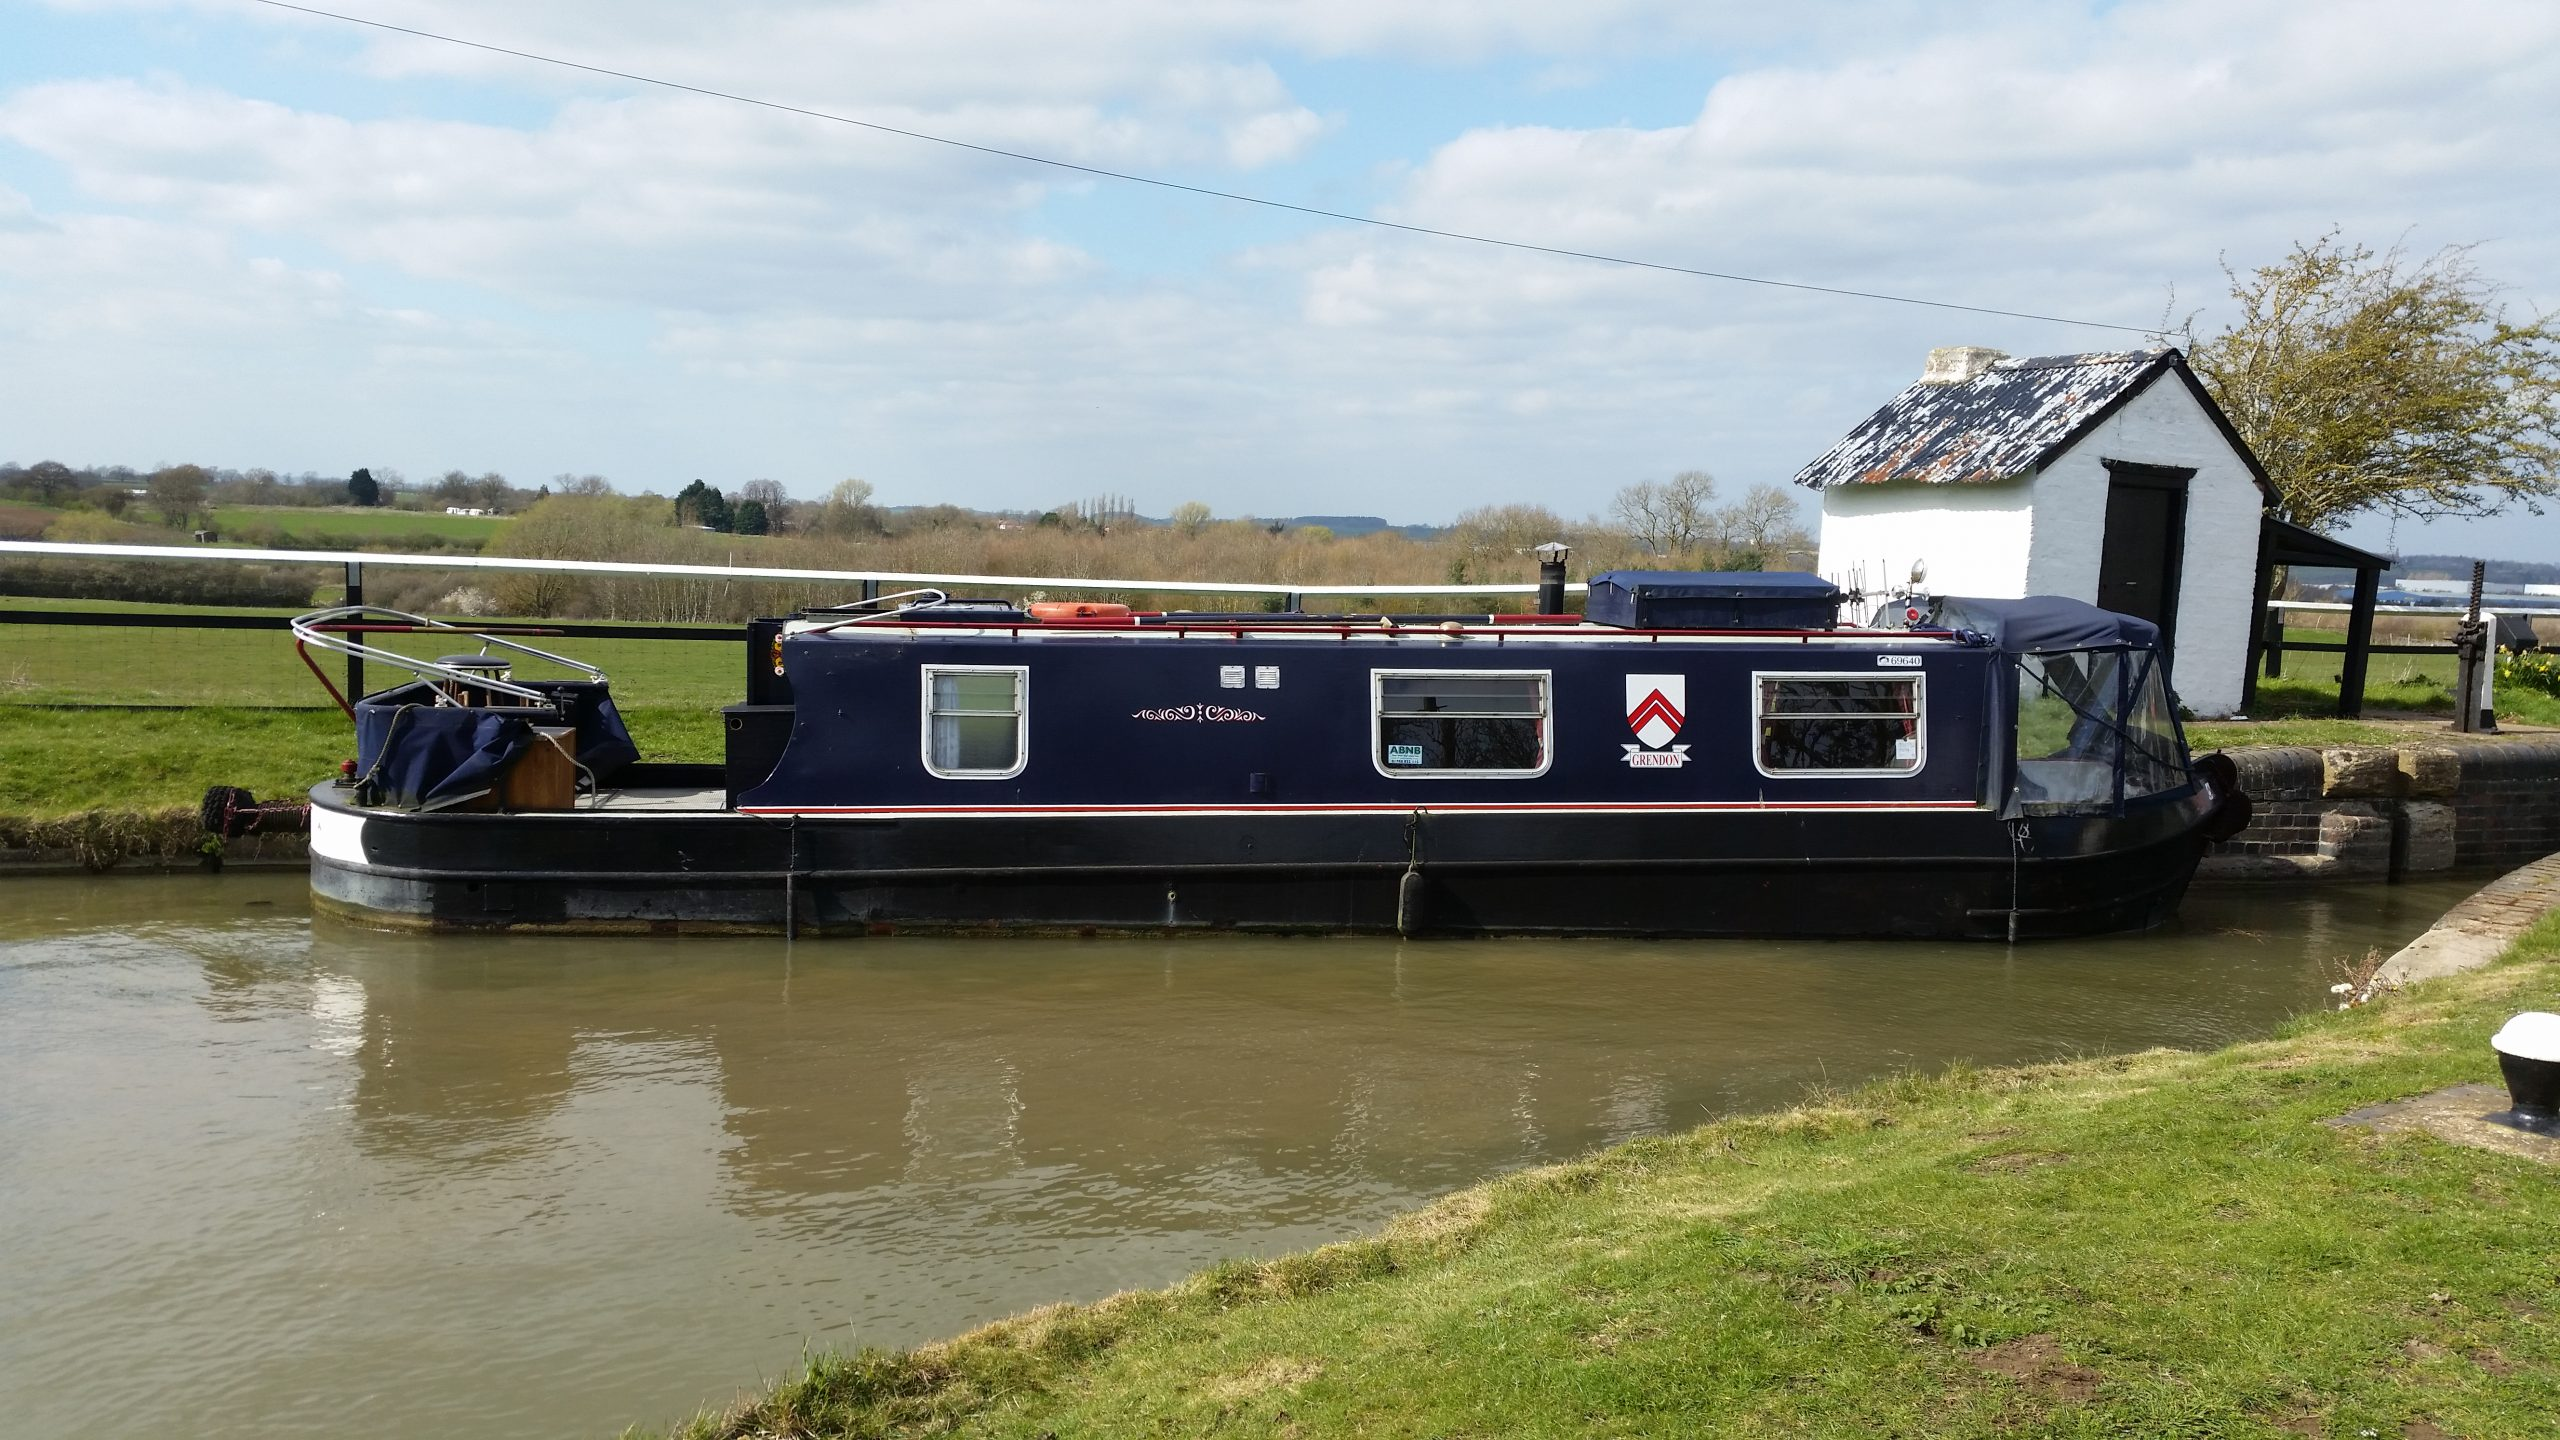 Move narrowboat to River Nene